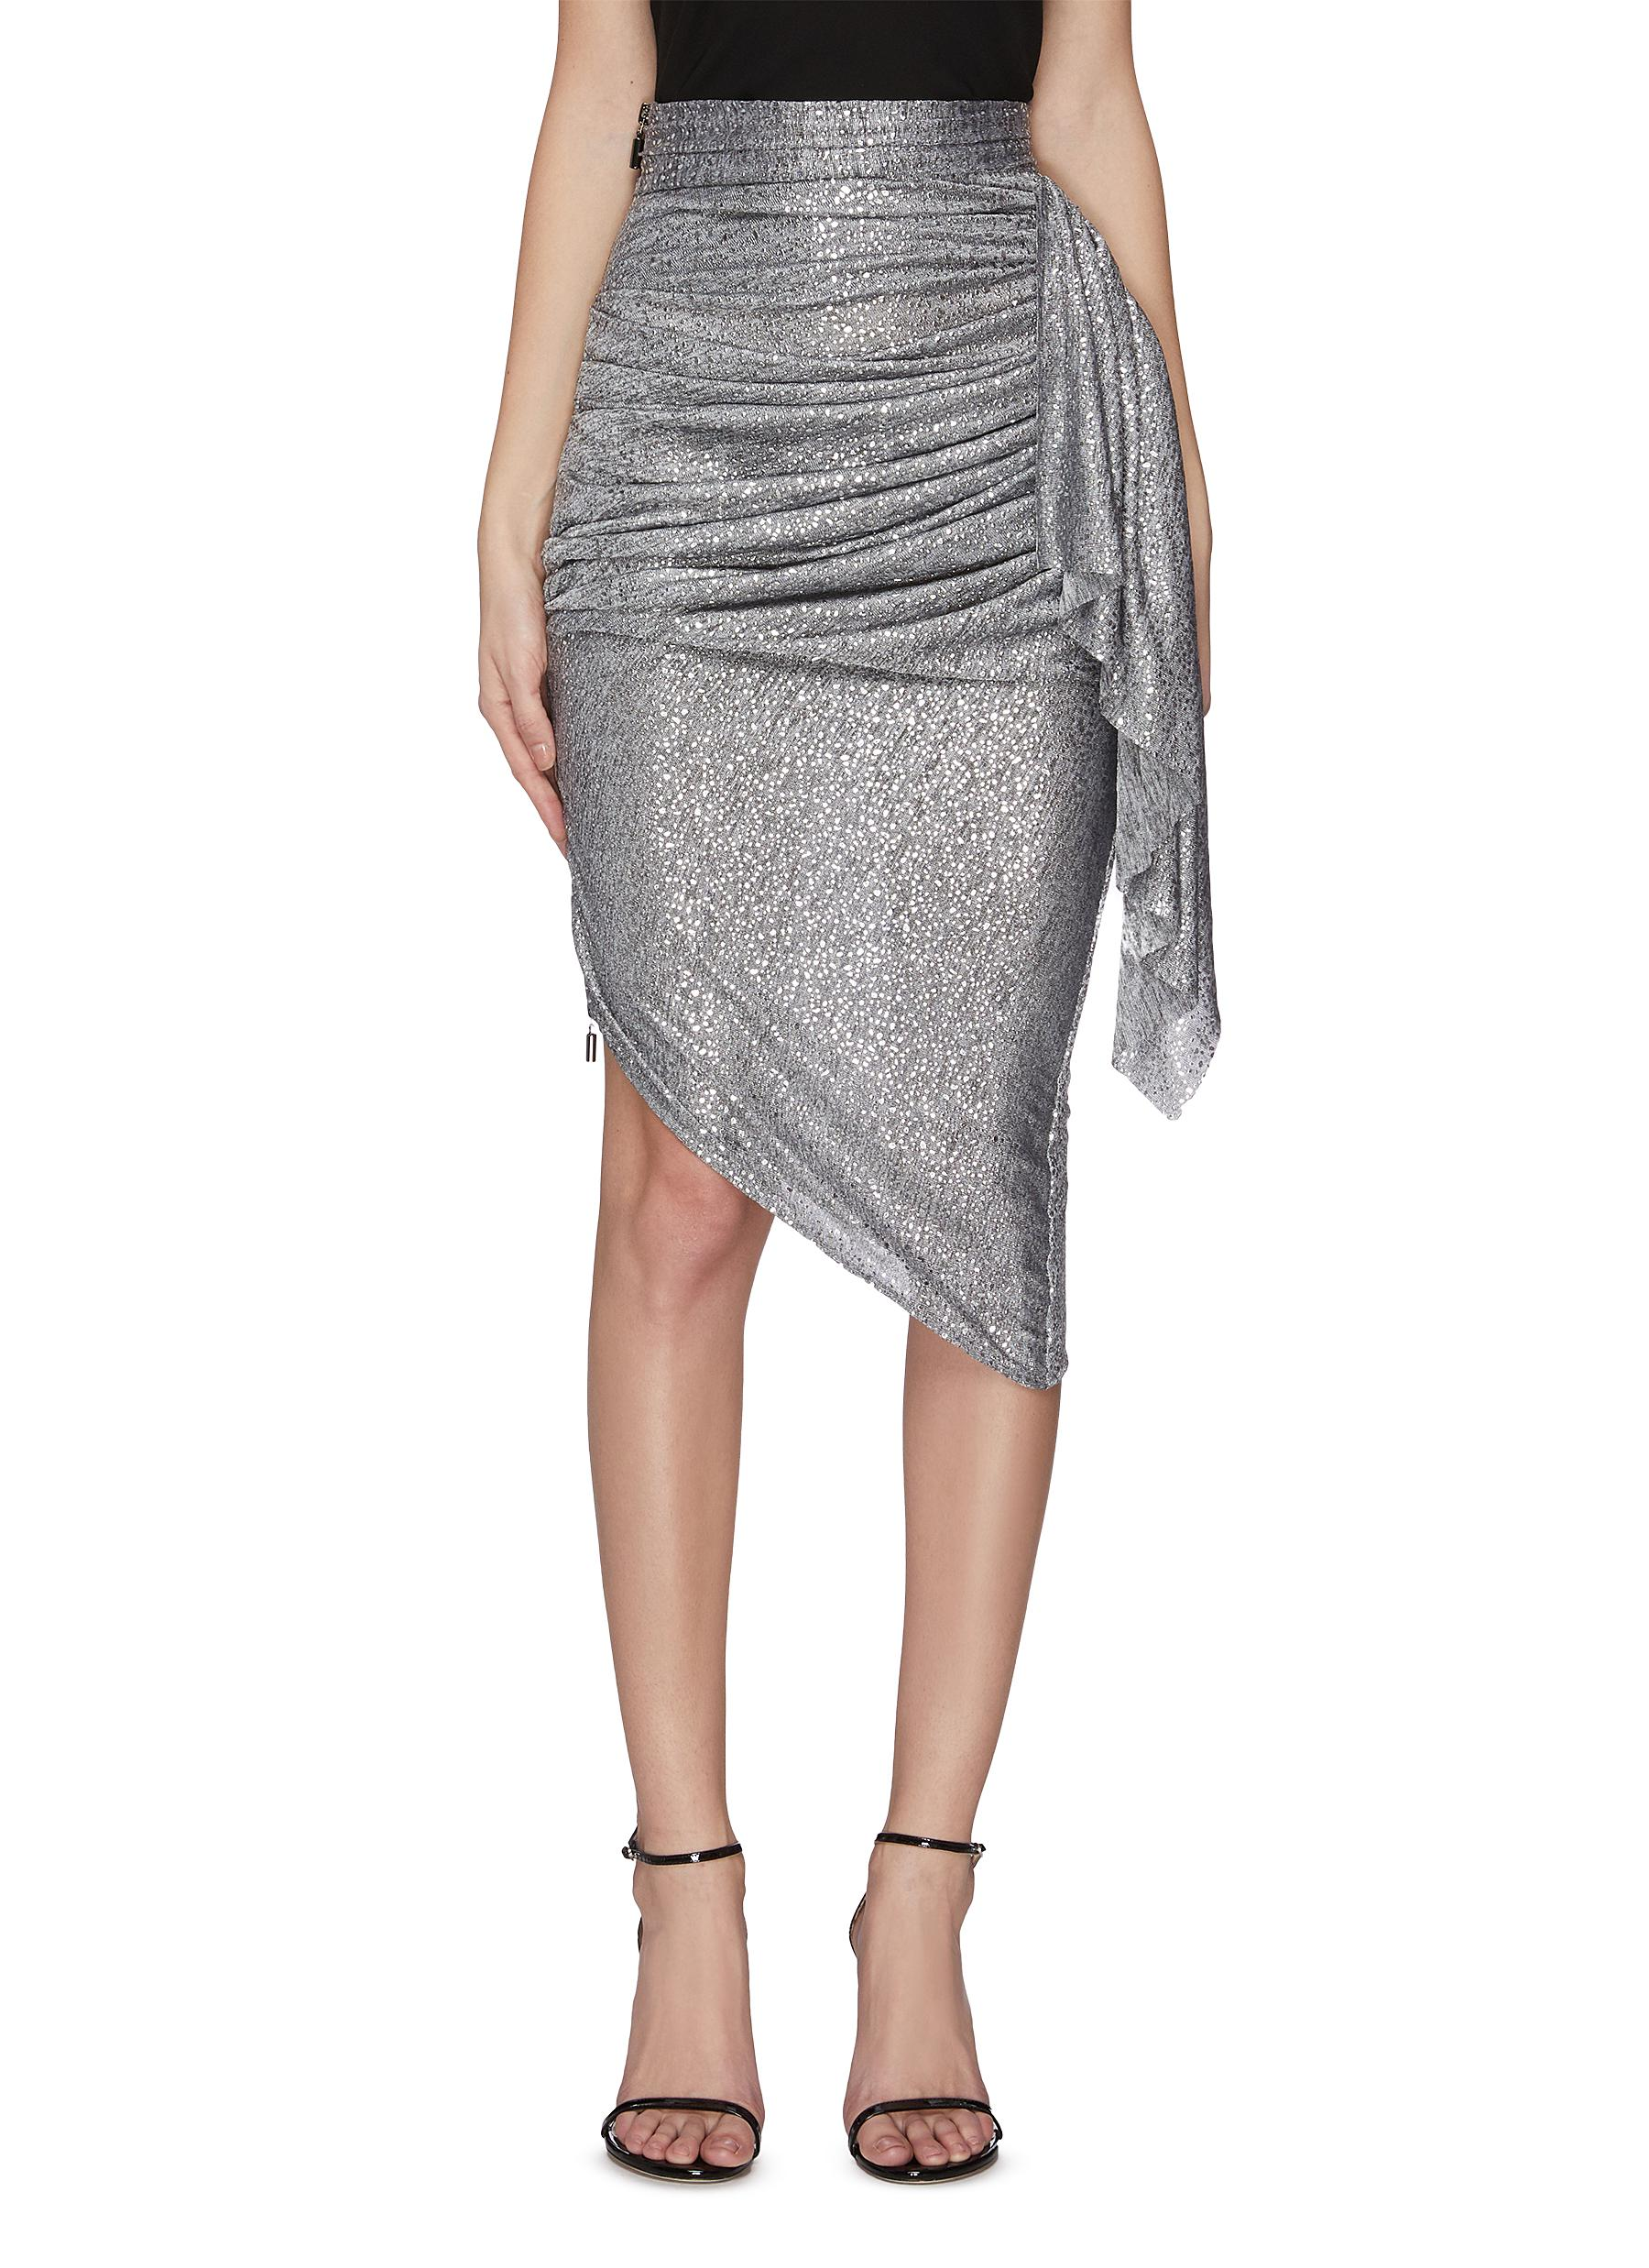 Buy Maticevski Skirts 'Raining' drape asymmetric skirt